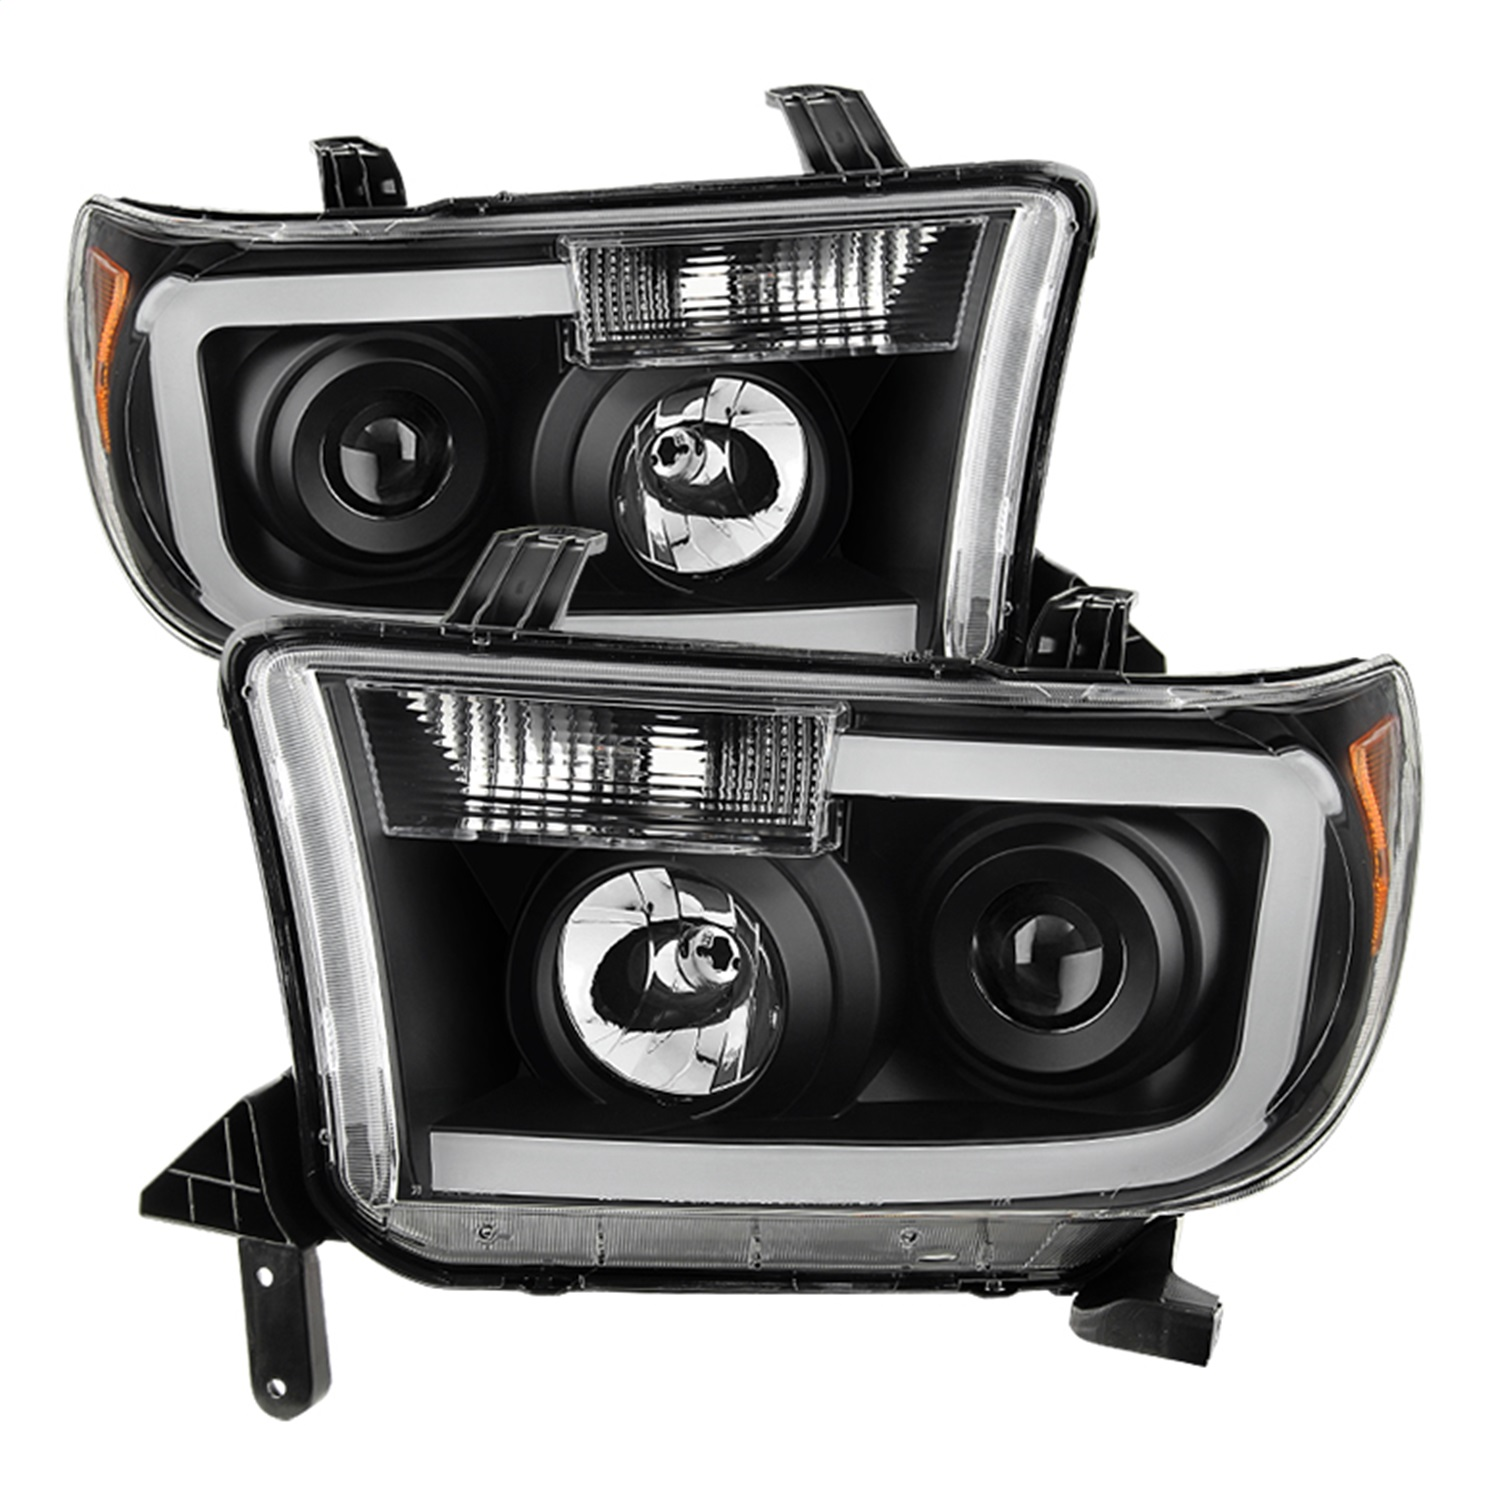 Details about Spyder Auto 9027888 XTune LED Light Bar Projector Headlights  Fits Sequoia Tundra